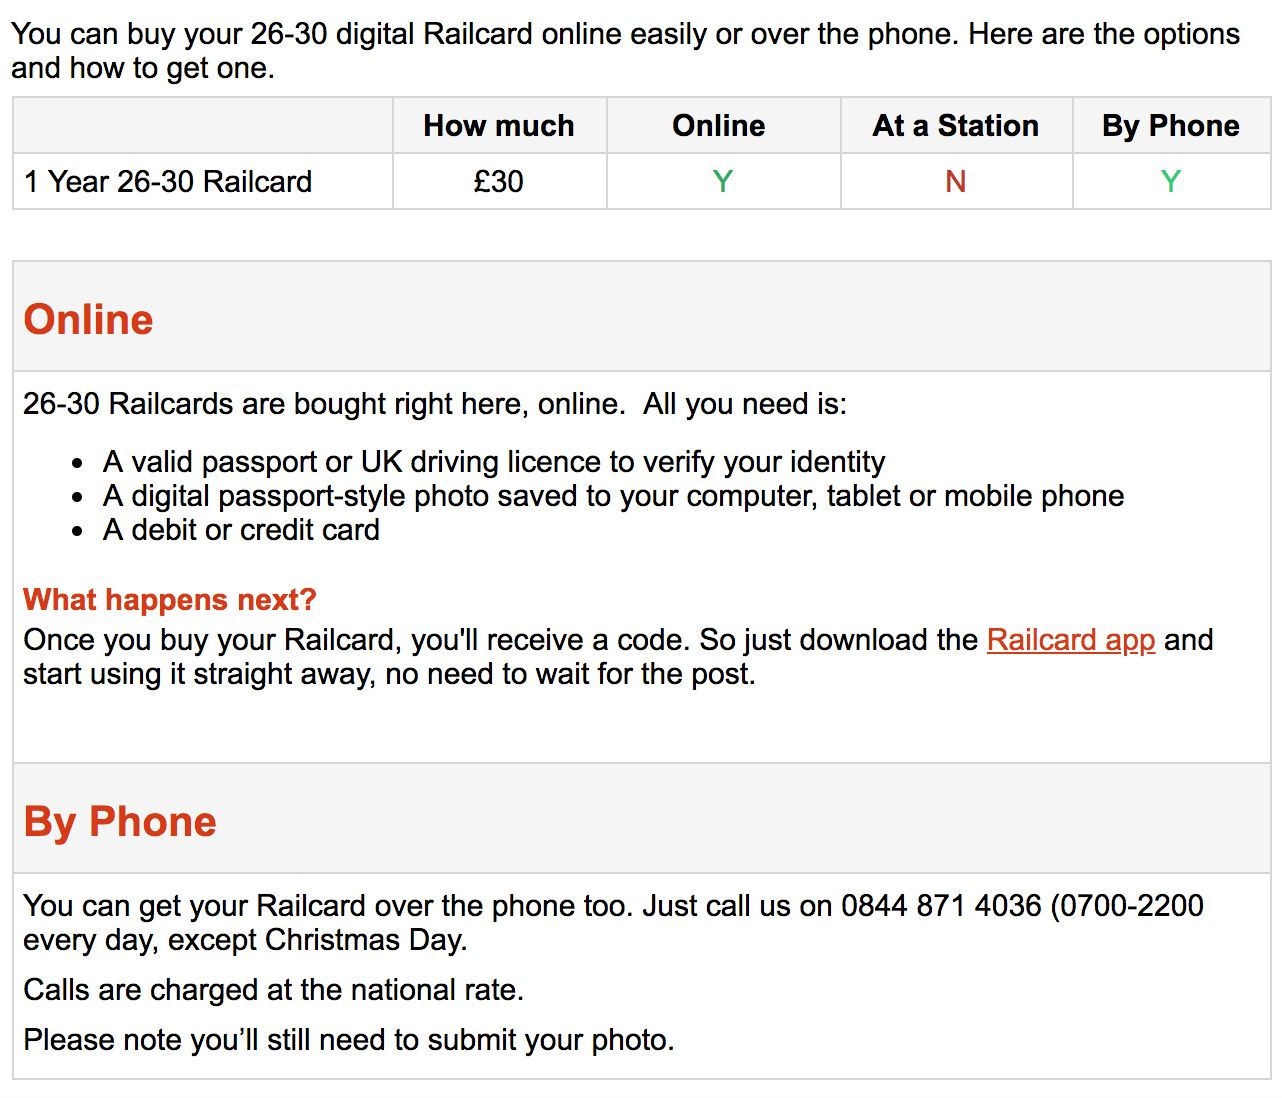 So many people wanted the new Millennial Railcard it crashed the website